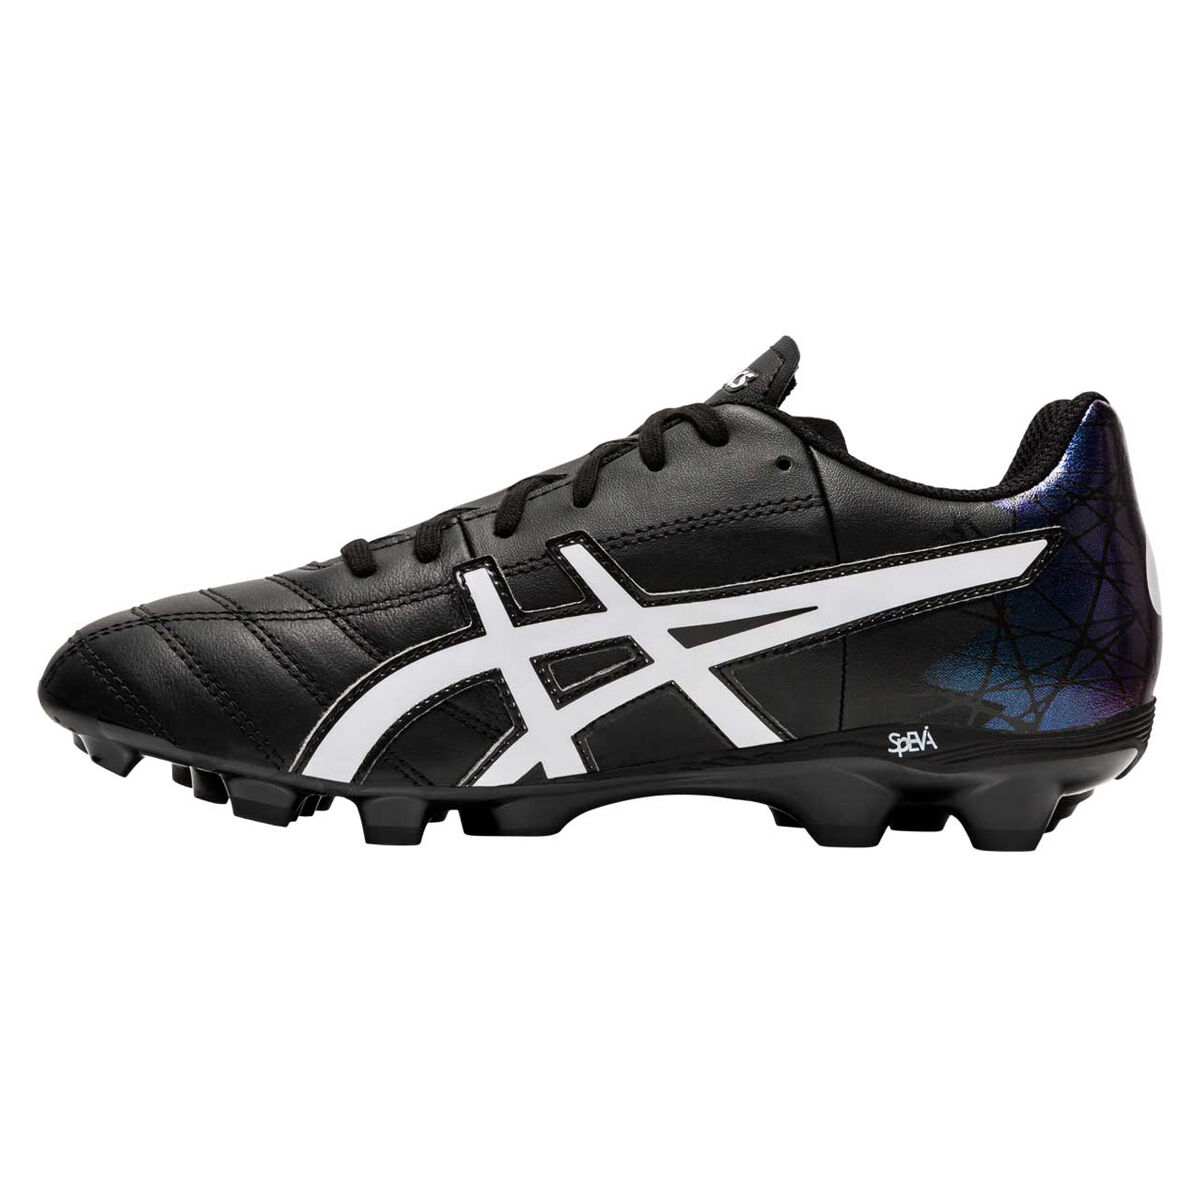 adidas malmo trainers and pants sale clearance | Asics Lethal Tigreor IT Kids Football Boots Black / White US 5